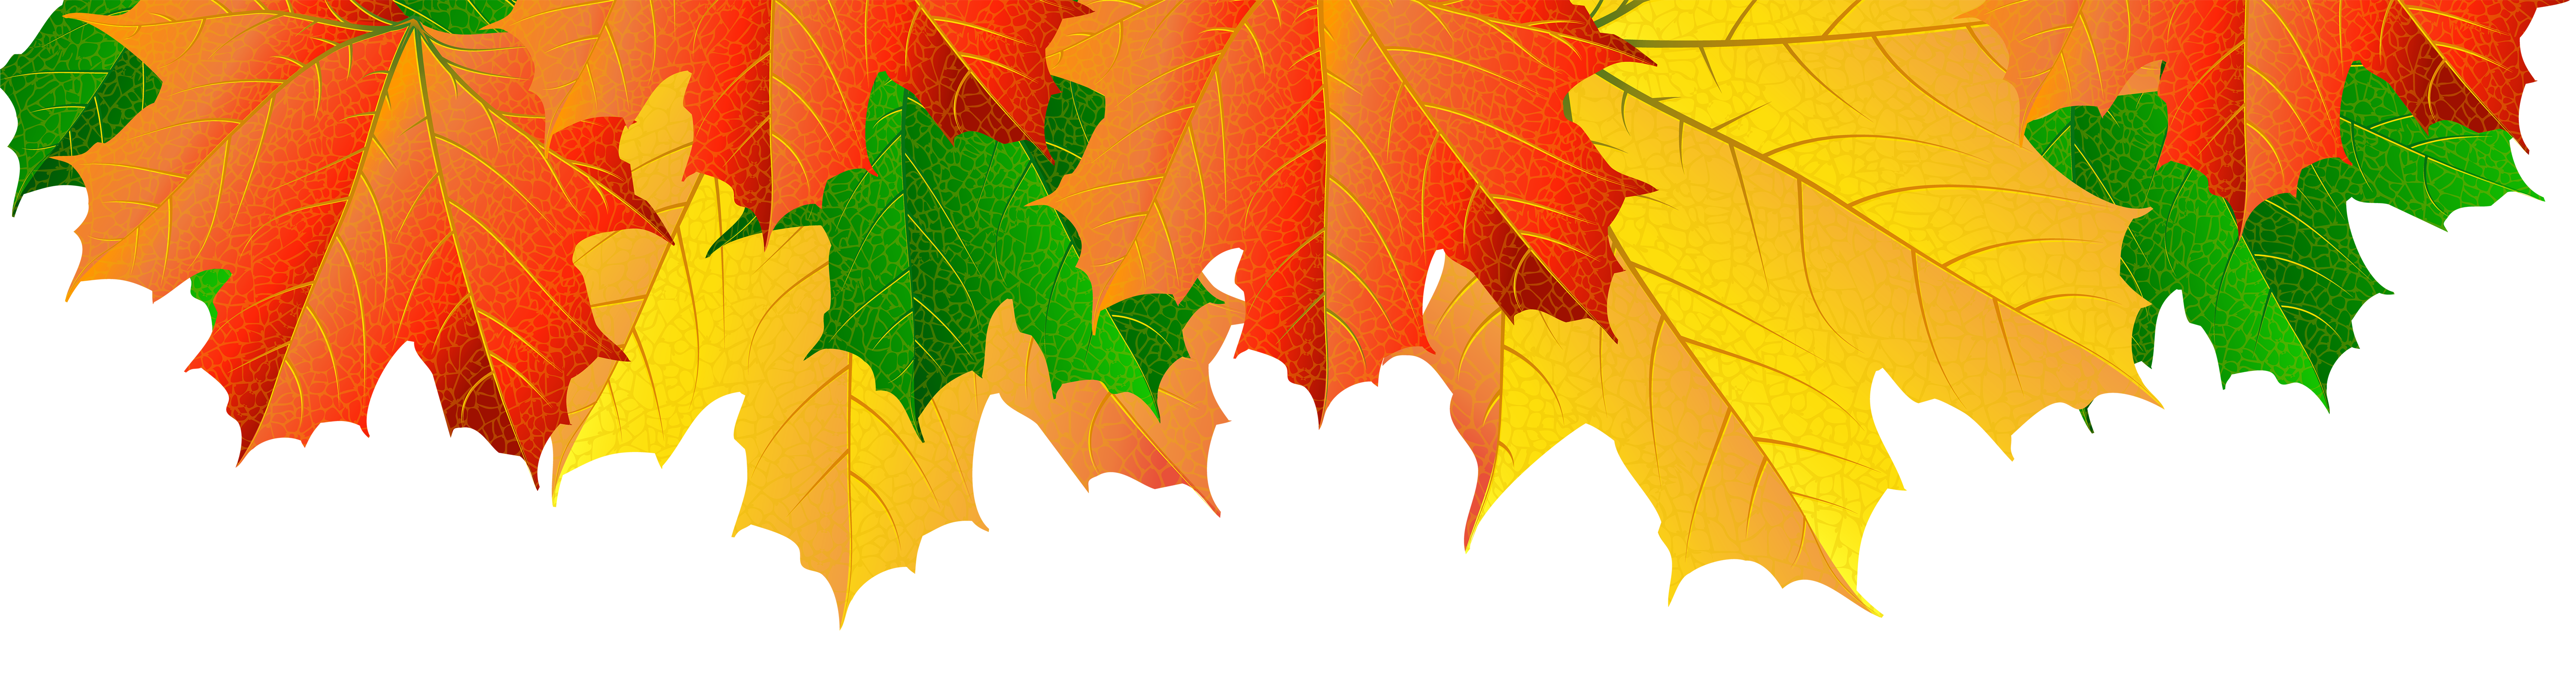 Fall leaves border png. Clip art image gallery